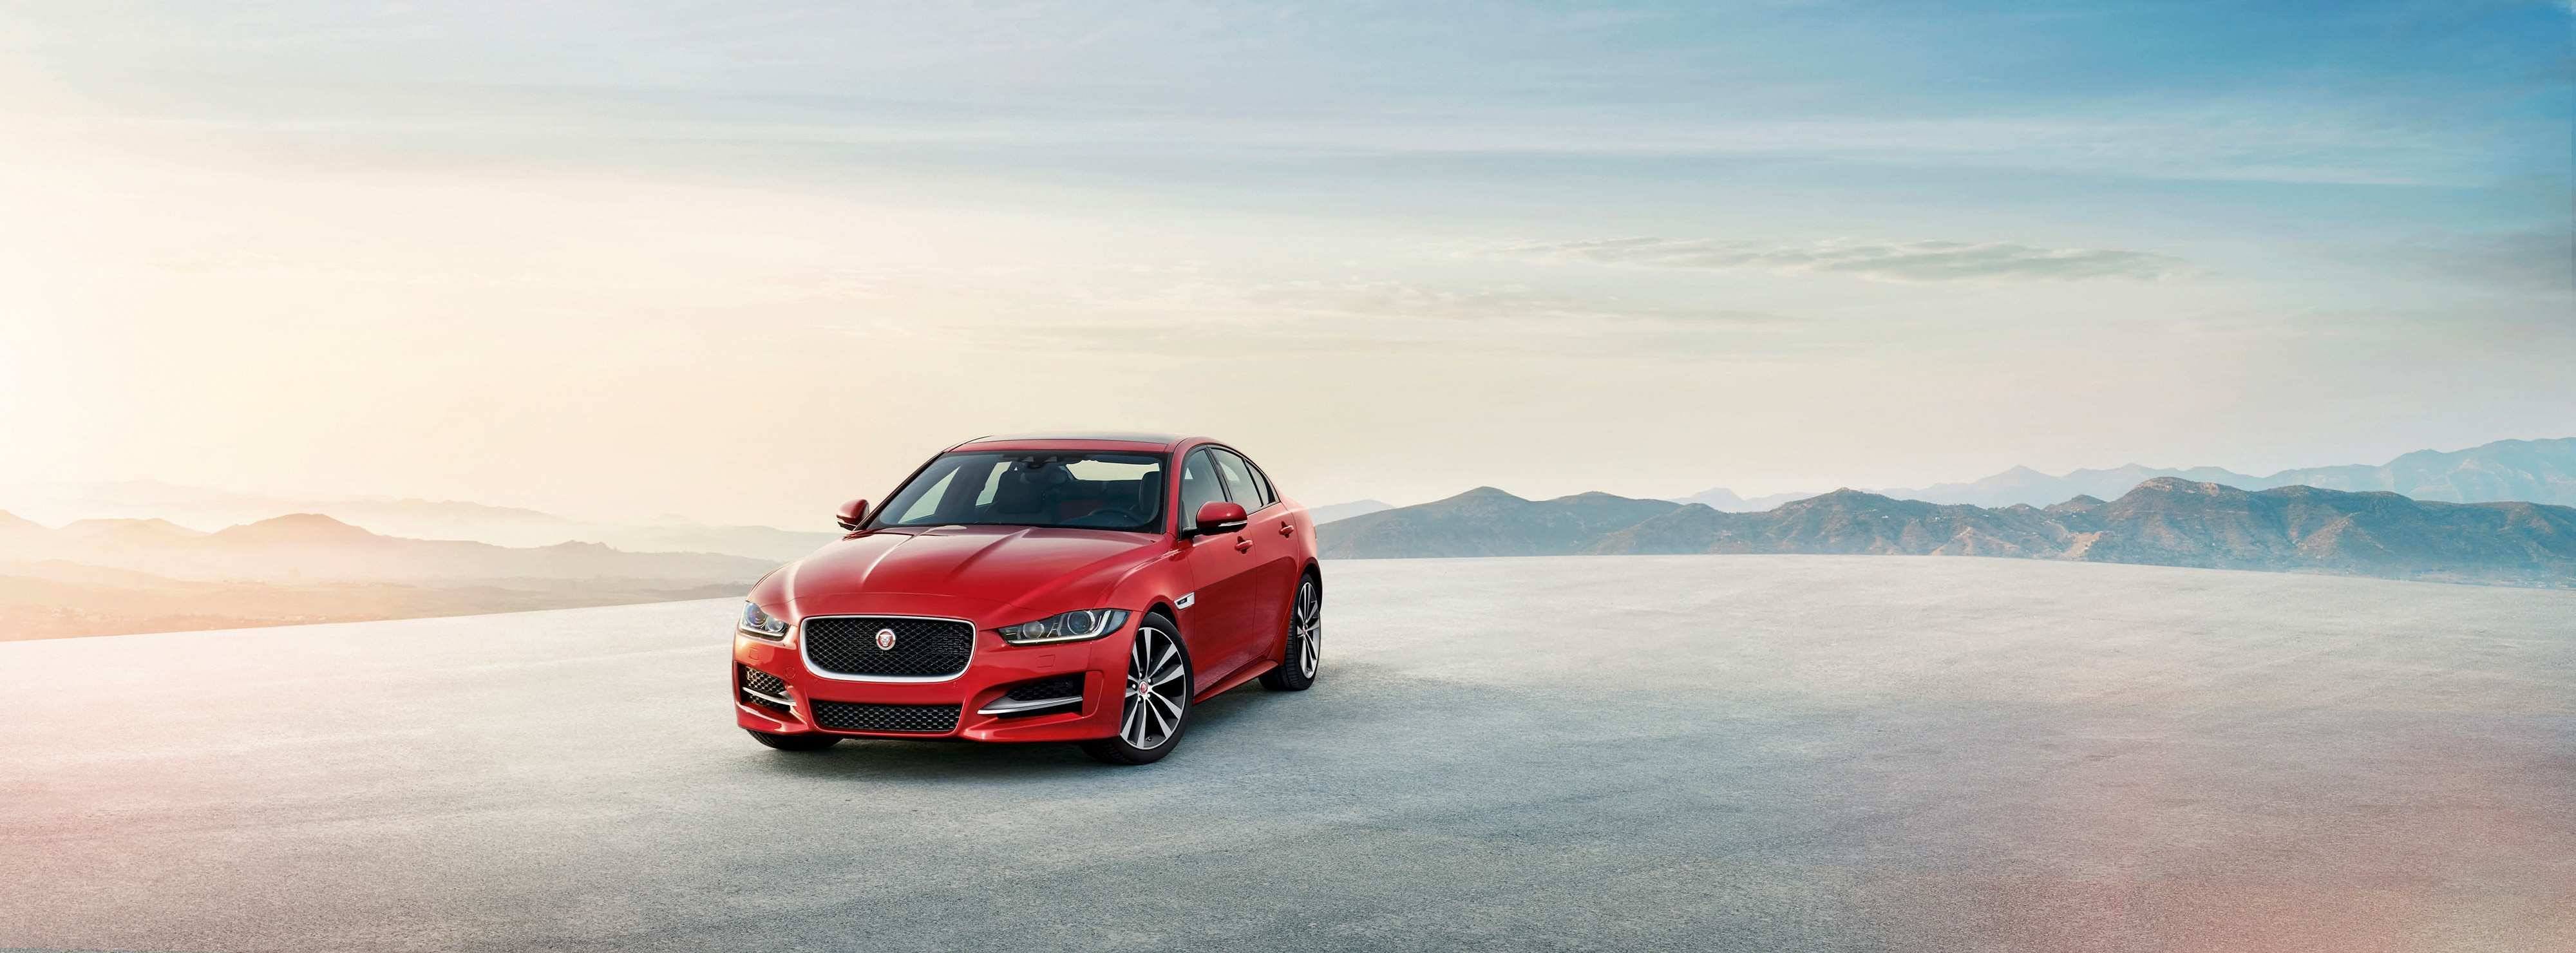 94 A 2019 All Jaguar Xe Sedan History